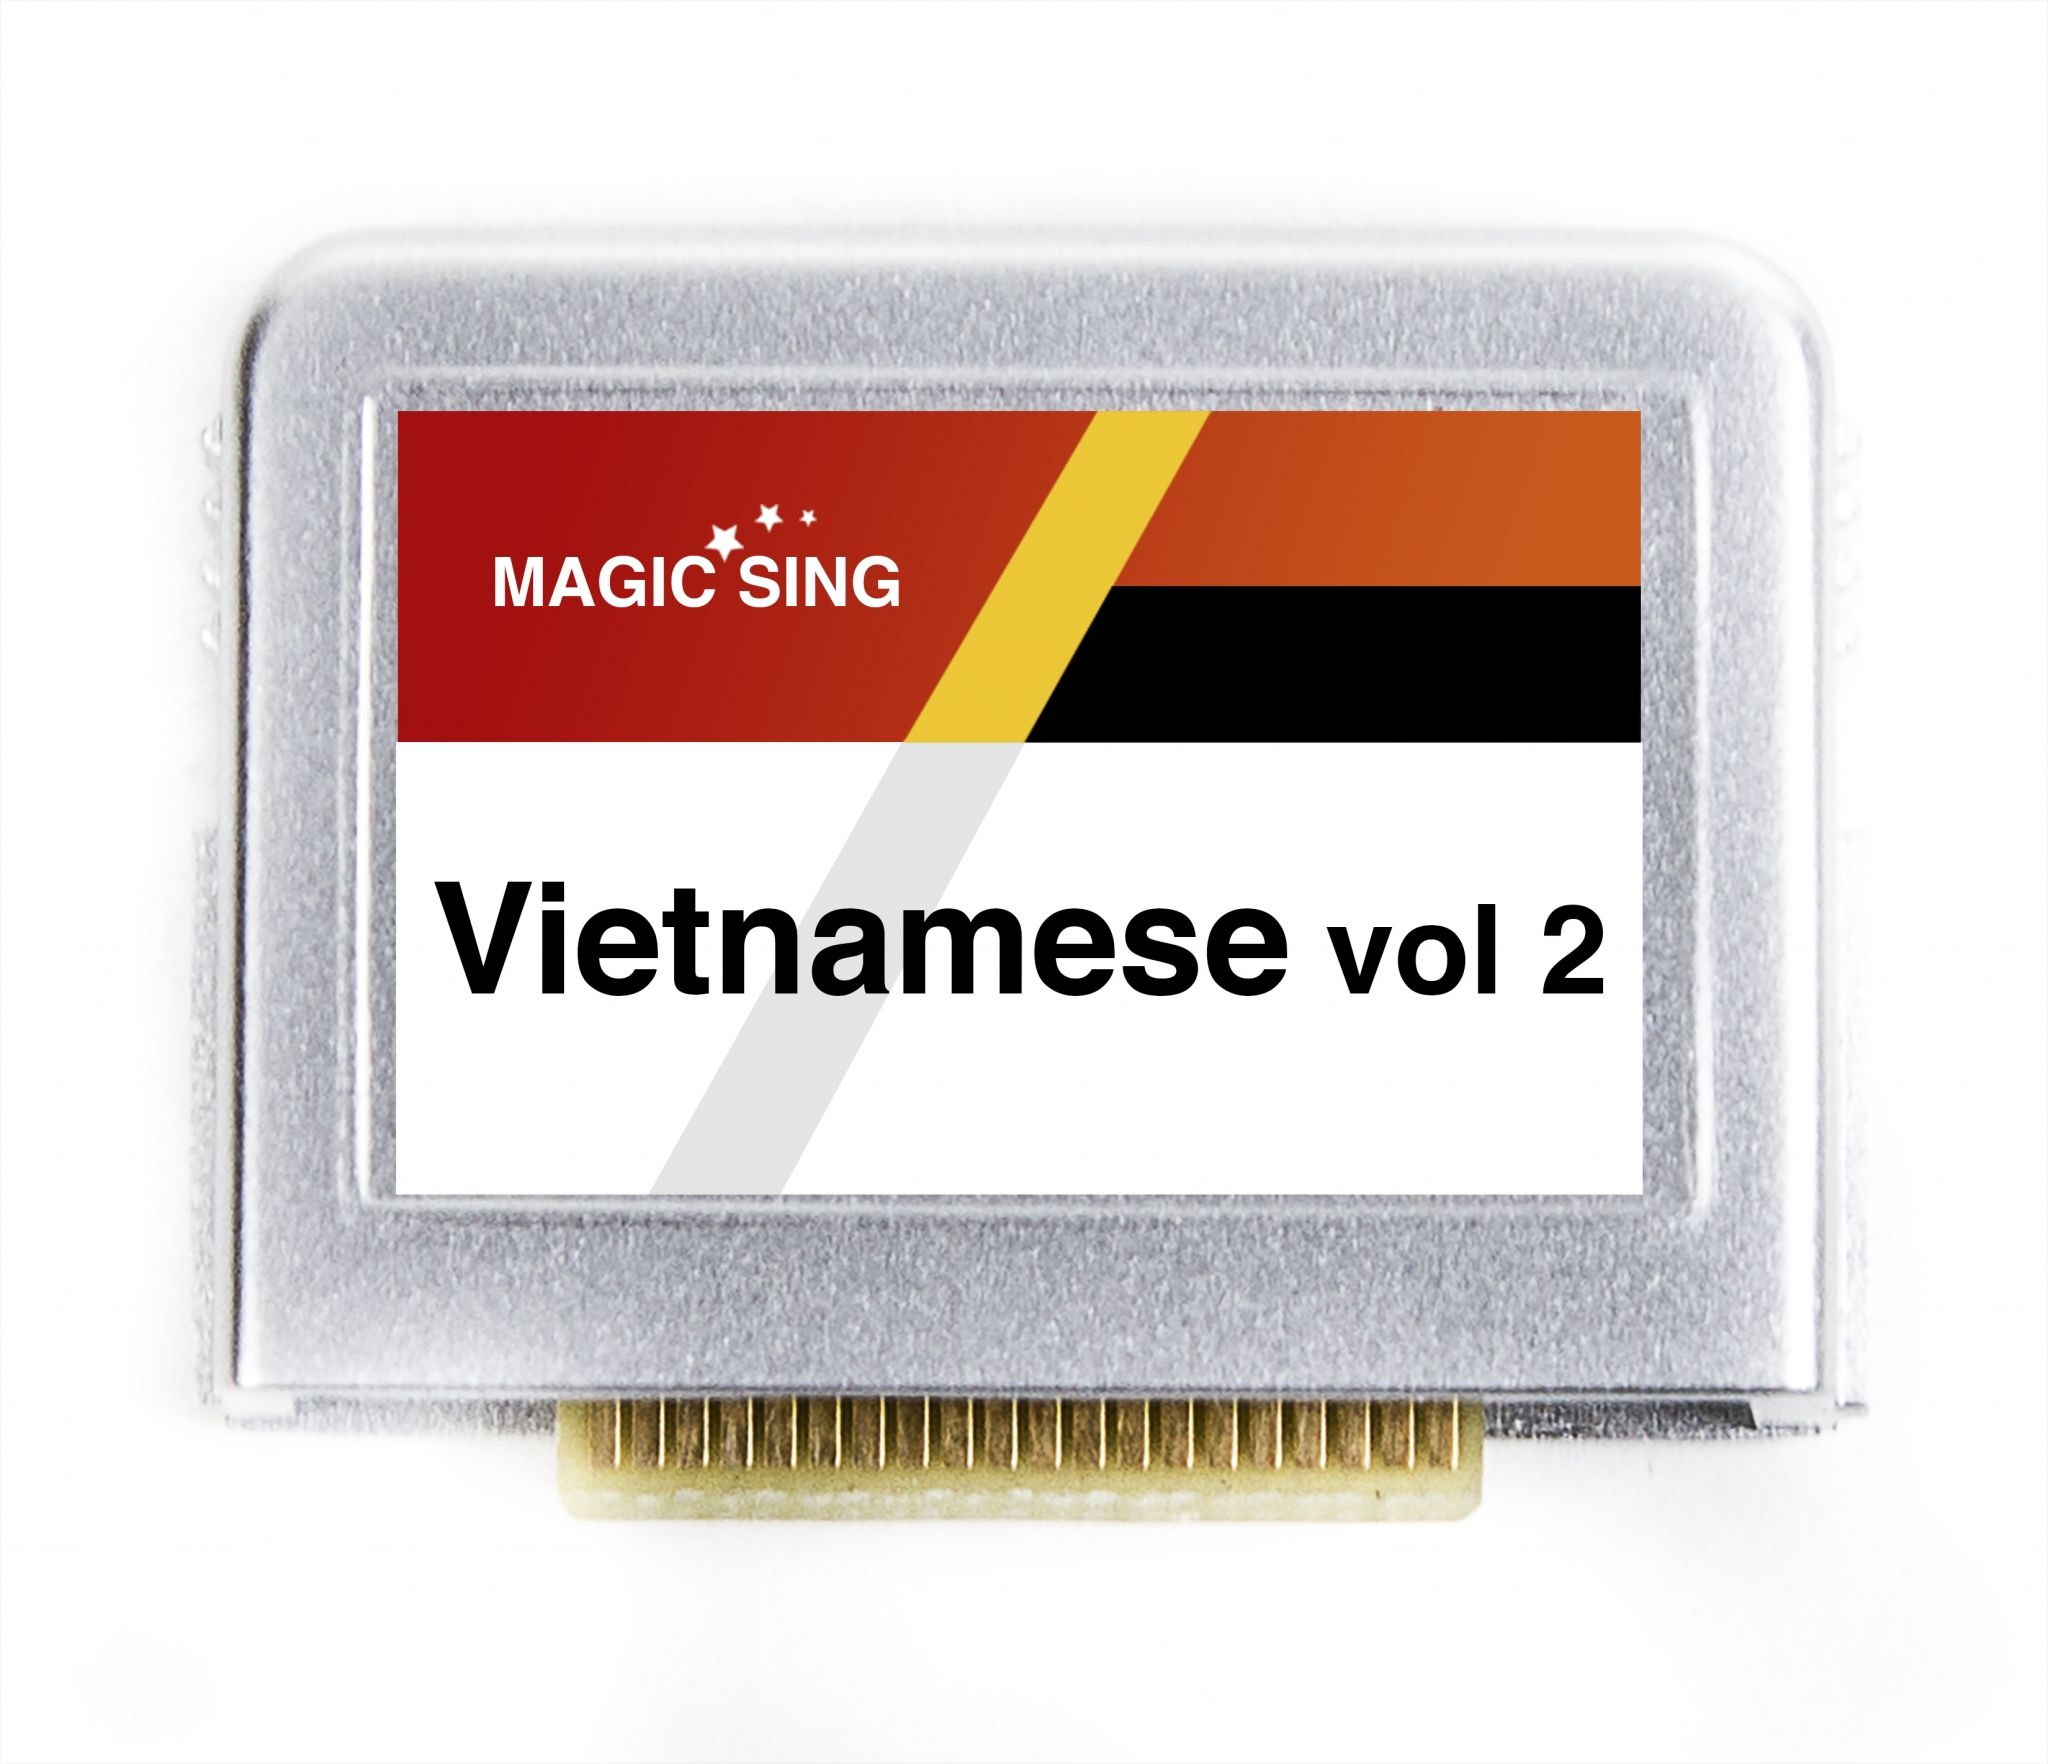 Vietnamese vol.2 (Vietnam) 725 songs